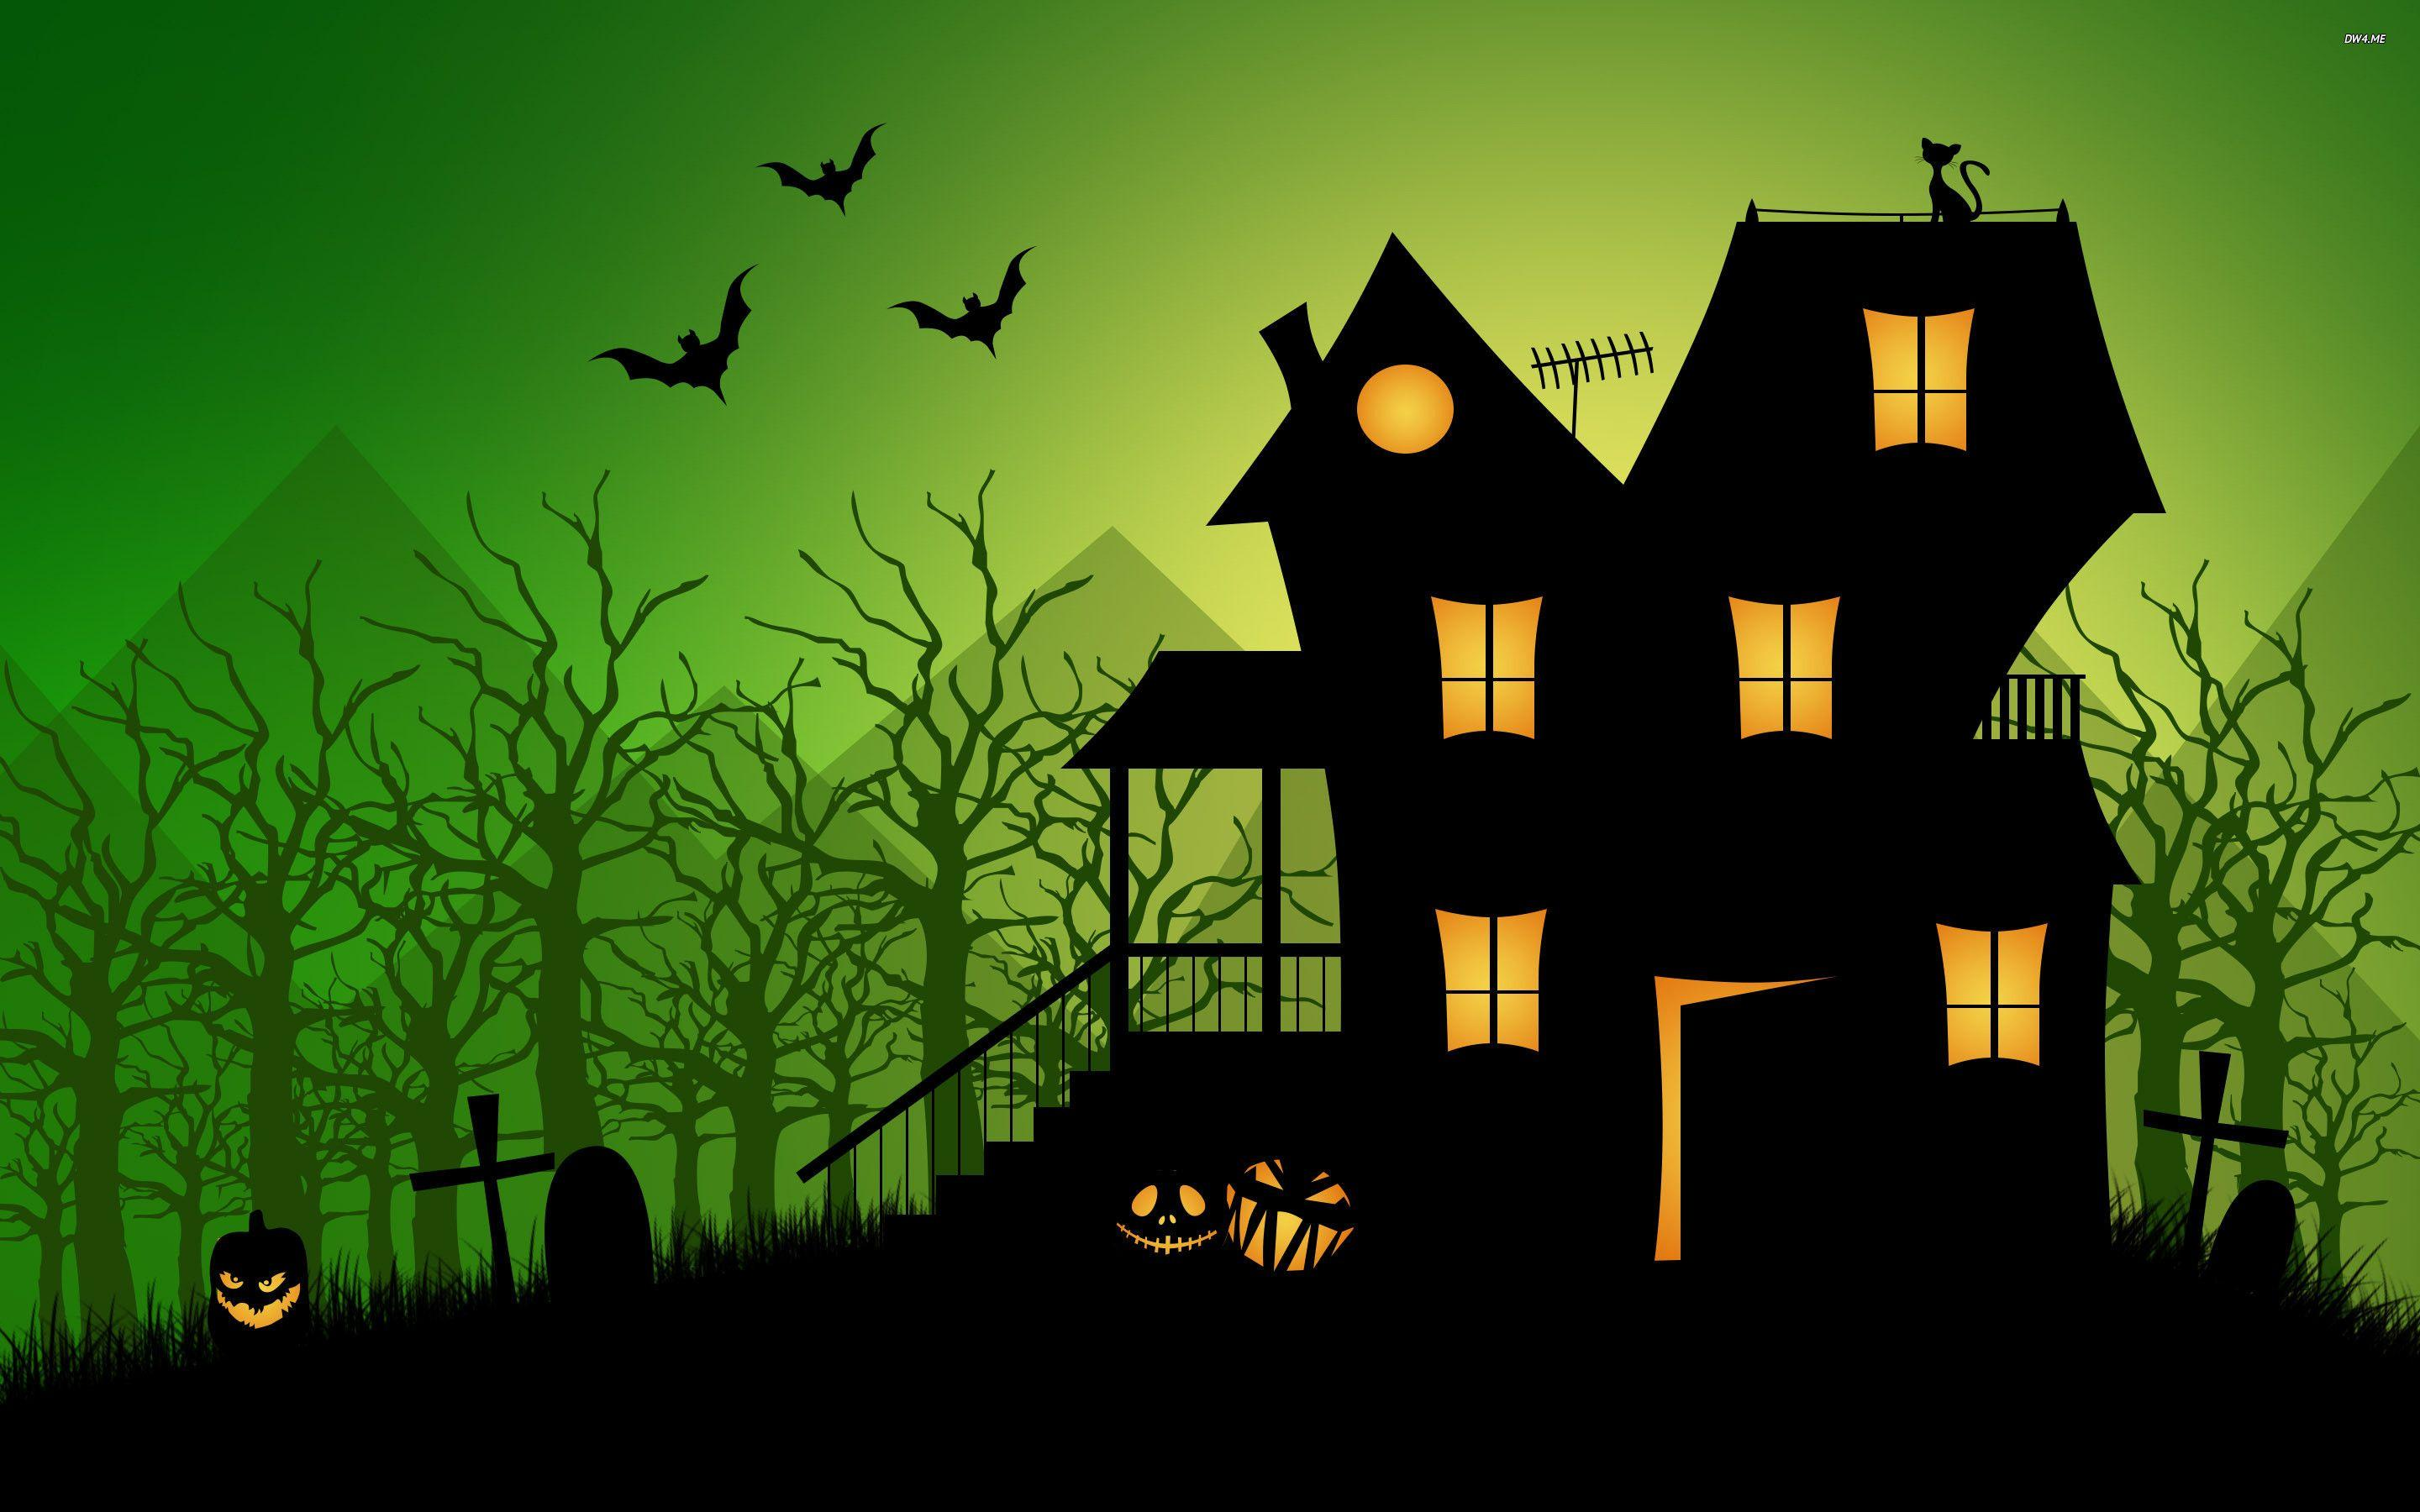 Haunted house wallpapers wallpaper cave for Wallpaper with houses on